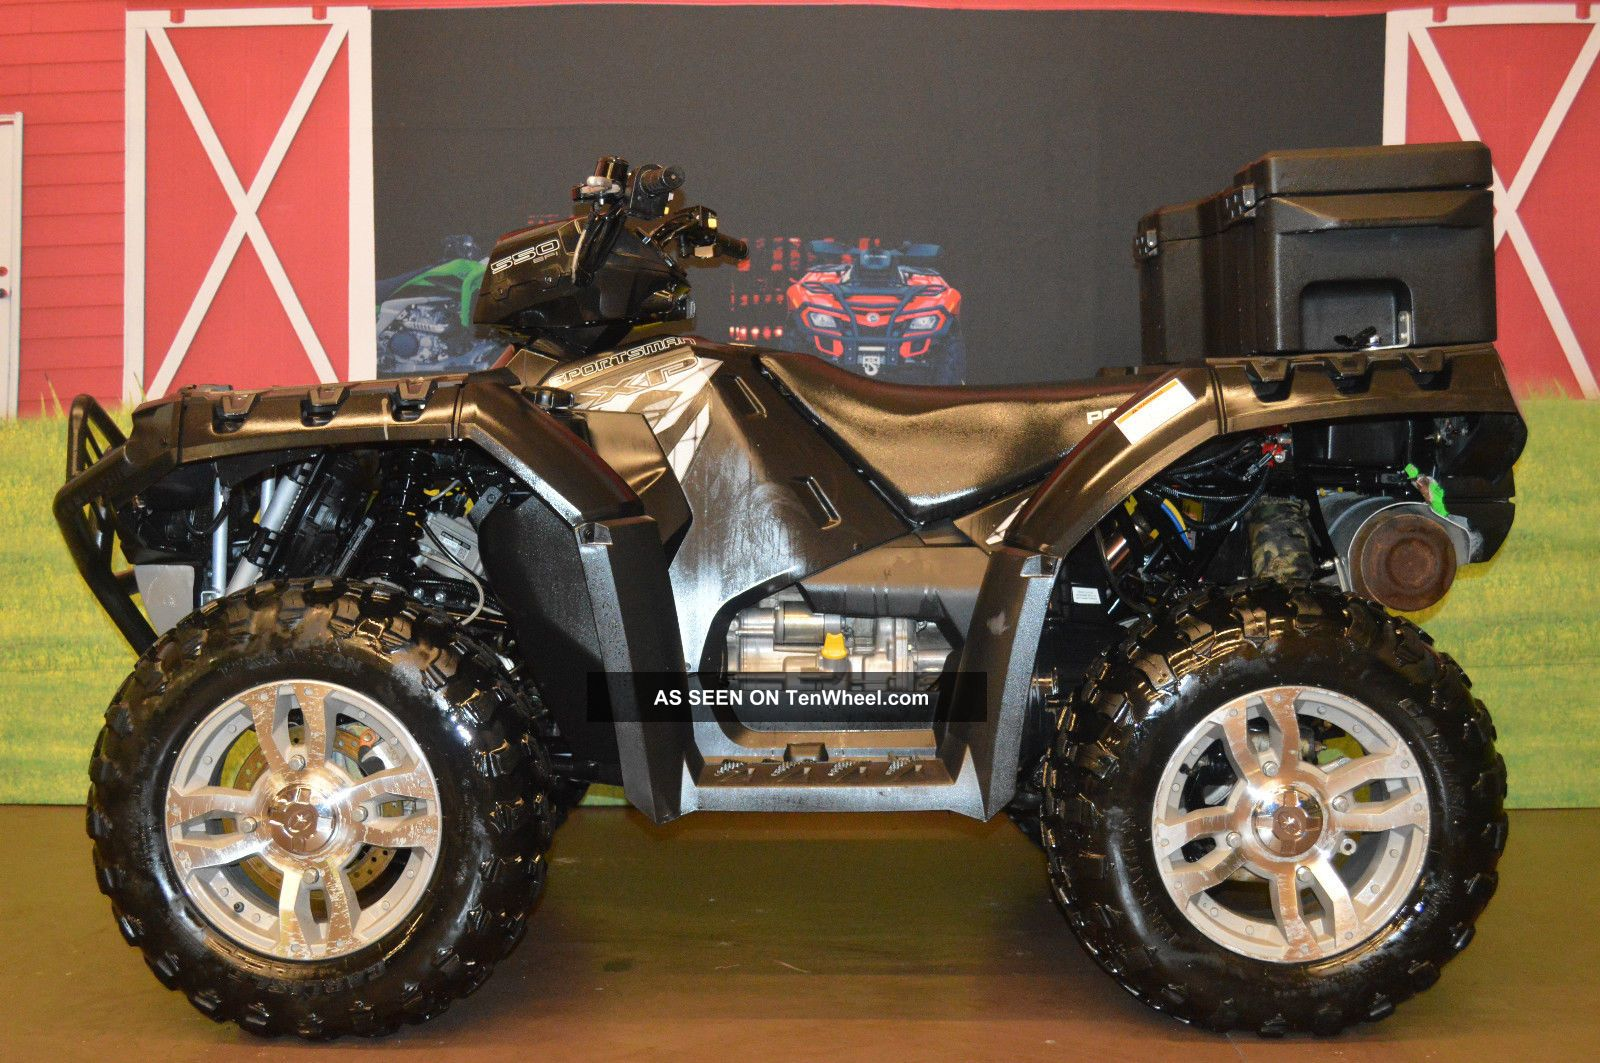 2009 Polaris Sportsman Polaris photo